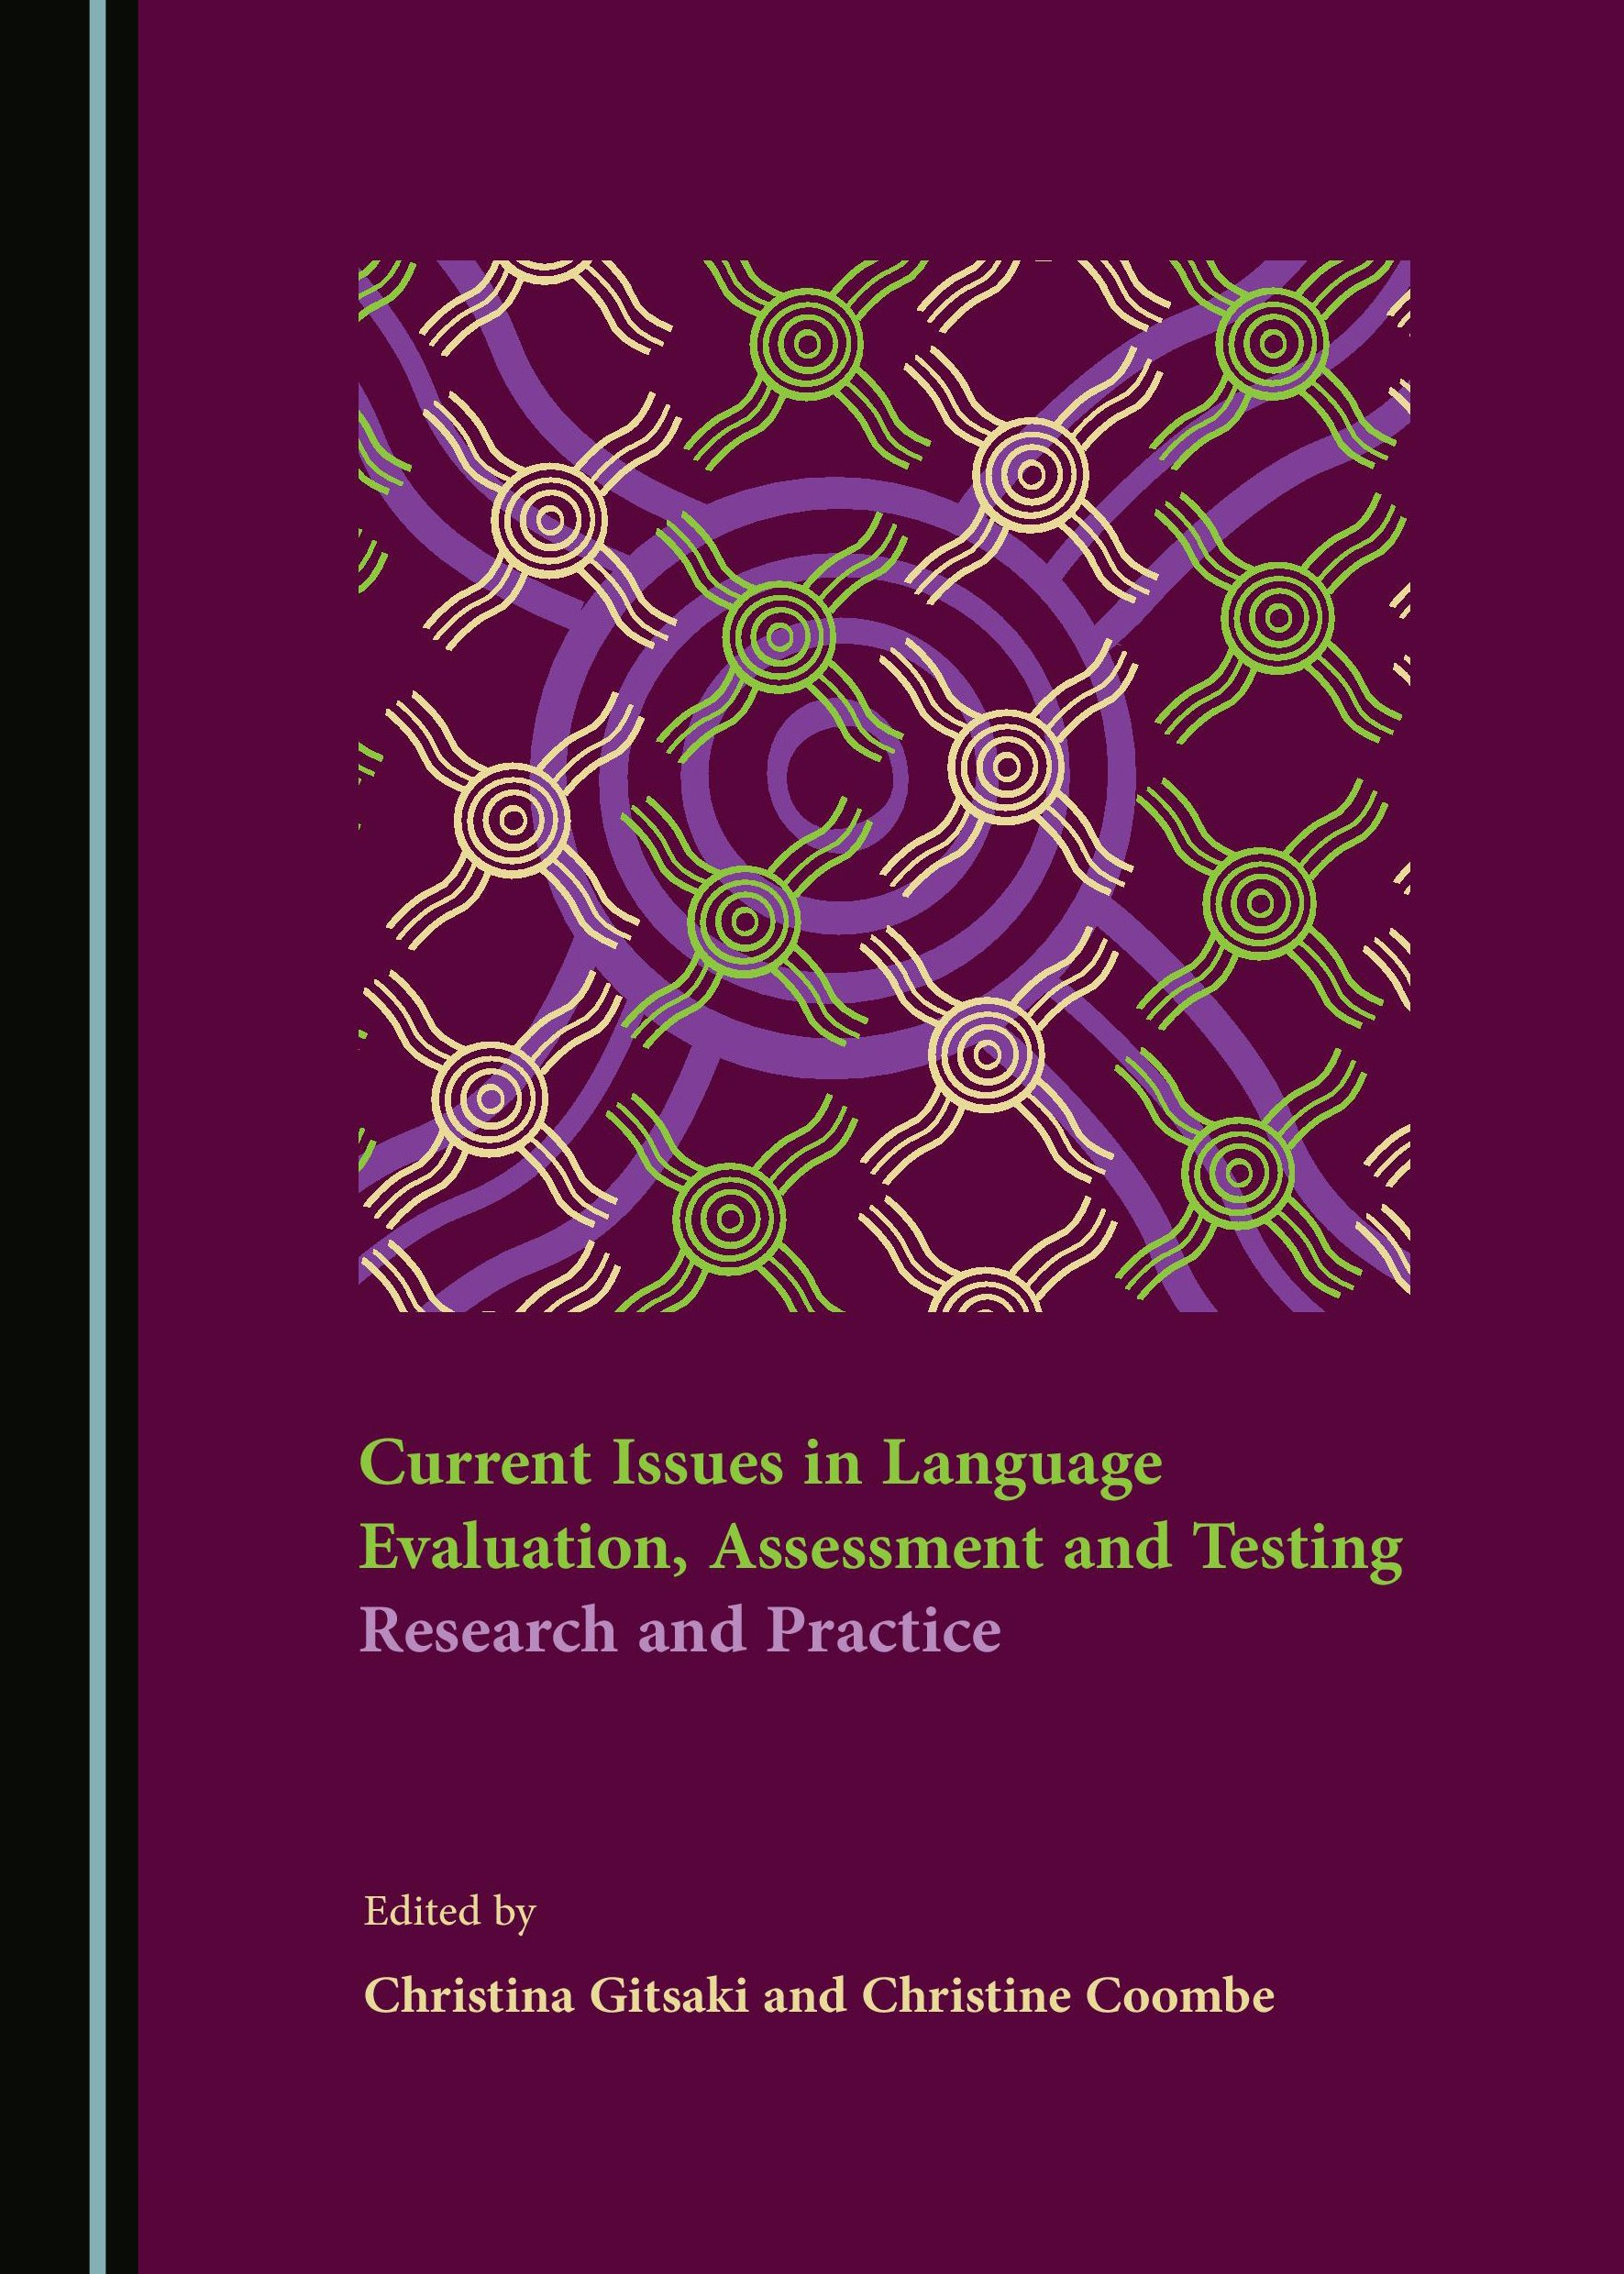 Current Issues in Language Evaluation, Assessment and Testing: Research and Practice